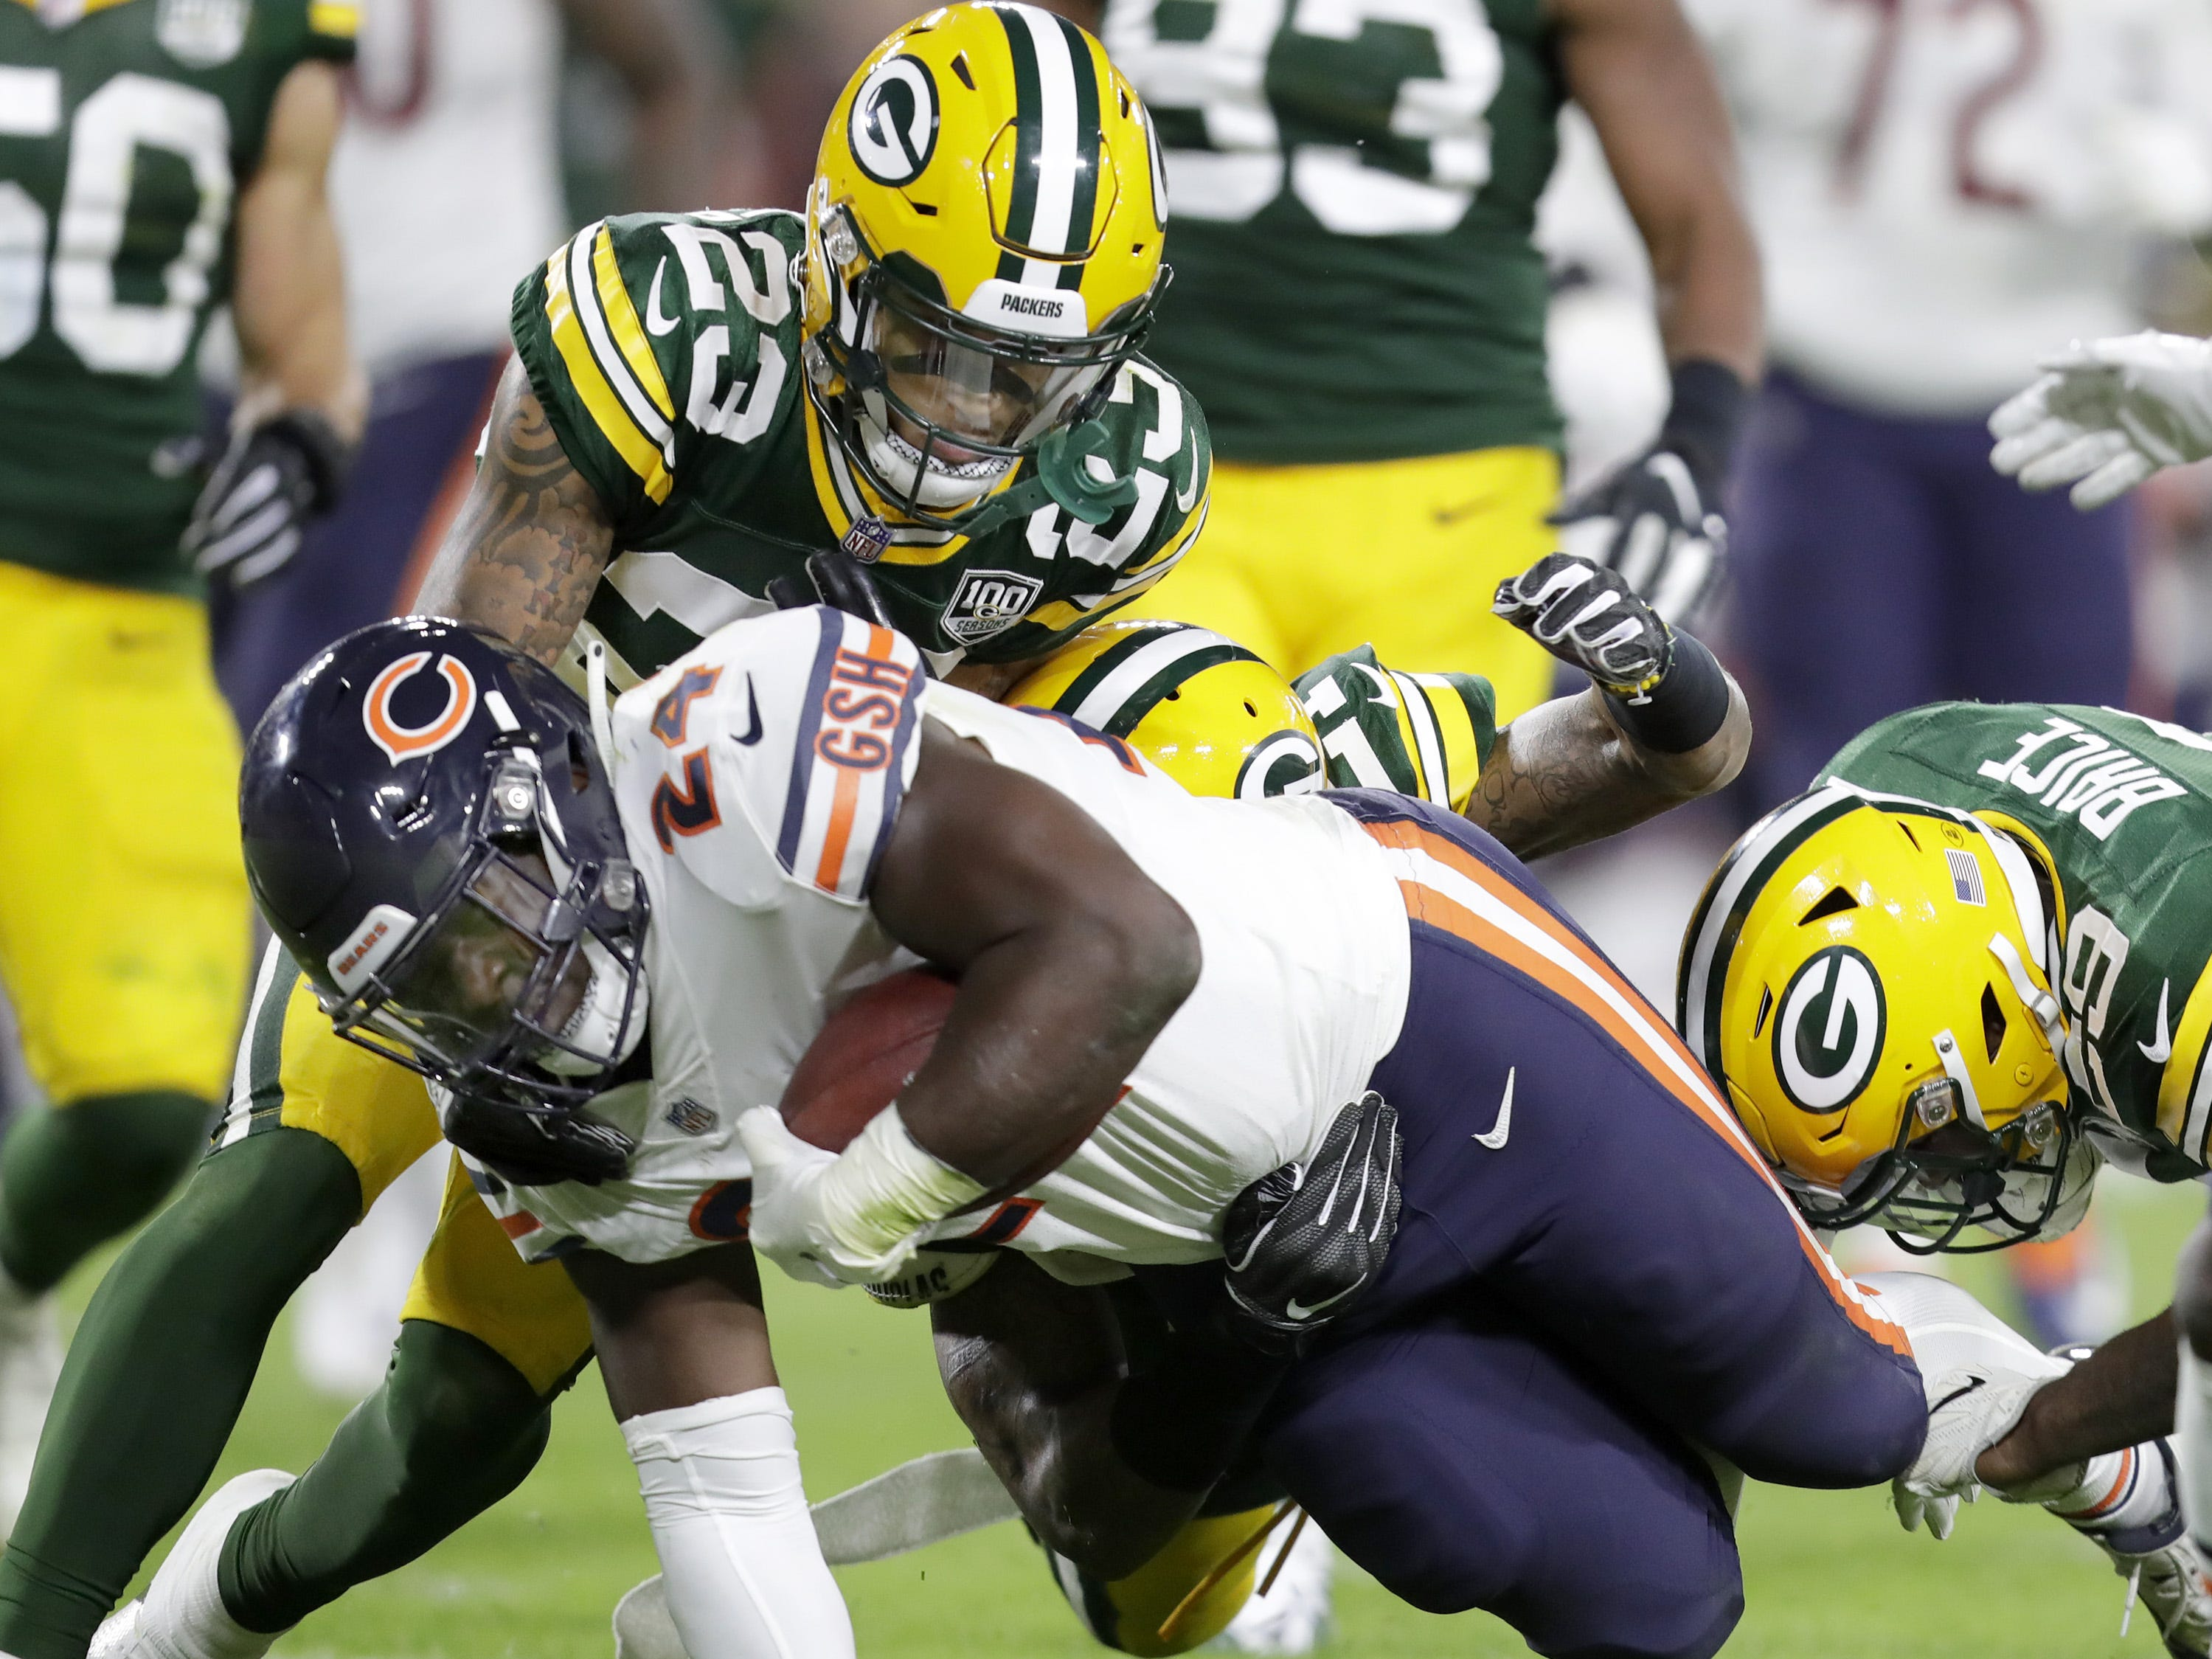 Chicago Bears' Jordan Howard rushes against Green Bay Packers' Jaire Alexander, Ha Ha Clinton-Dix and Kentrell Brice in the season opener on Sunday, September 9, 2018, at Lambeau Field in Green Bay, Wis. The Packers defeated the Bears 24 to 23.